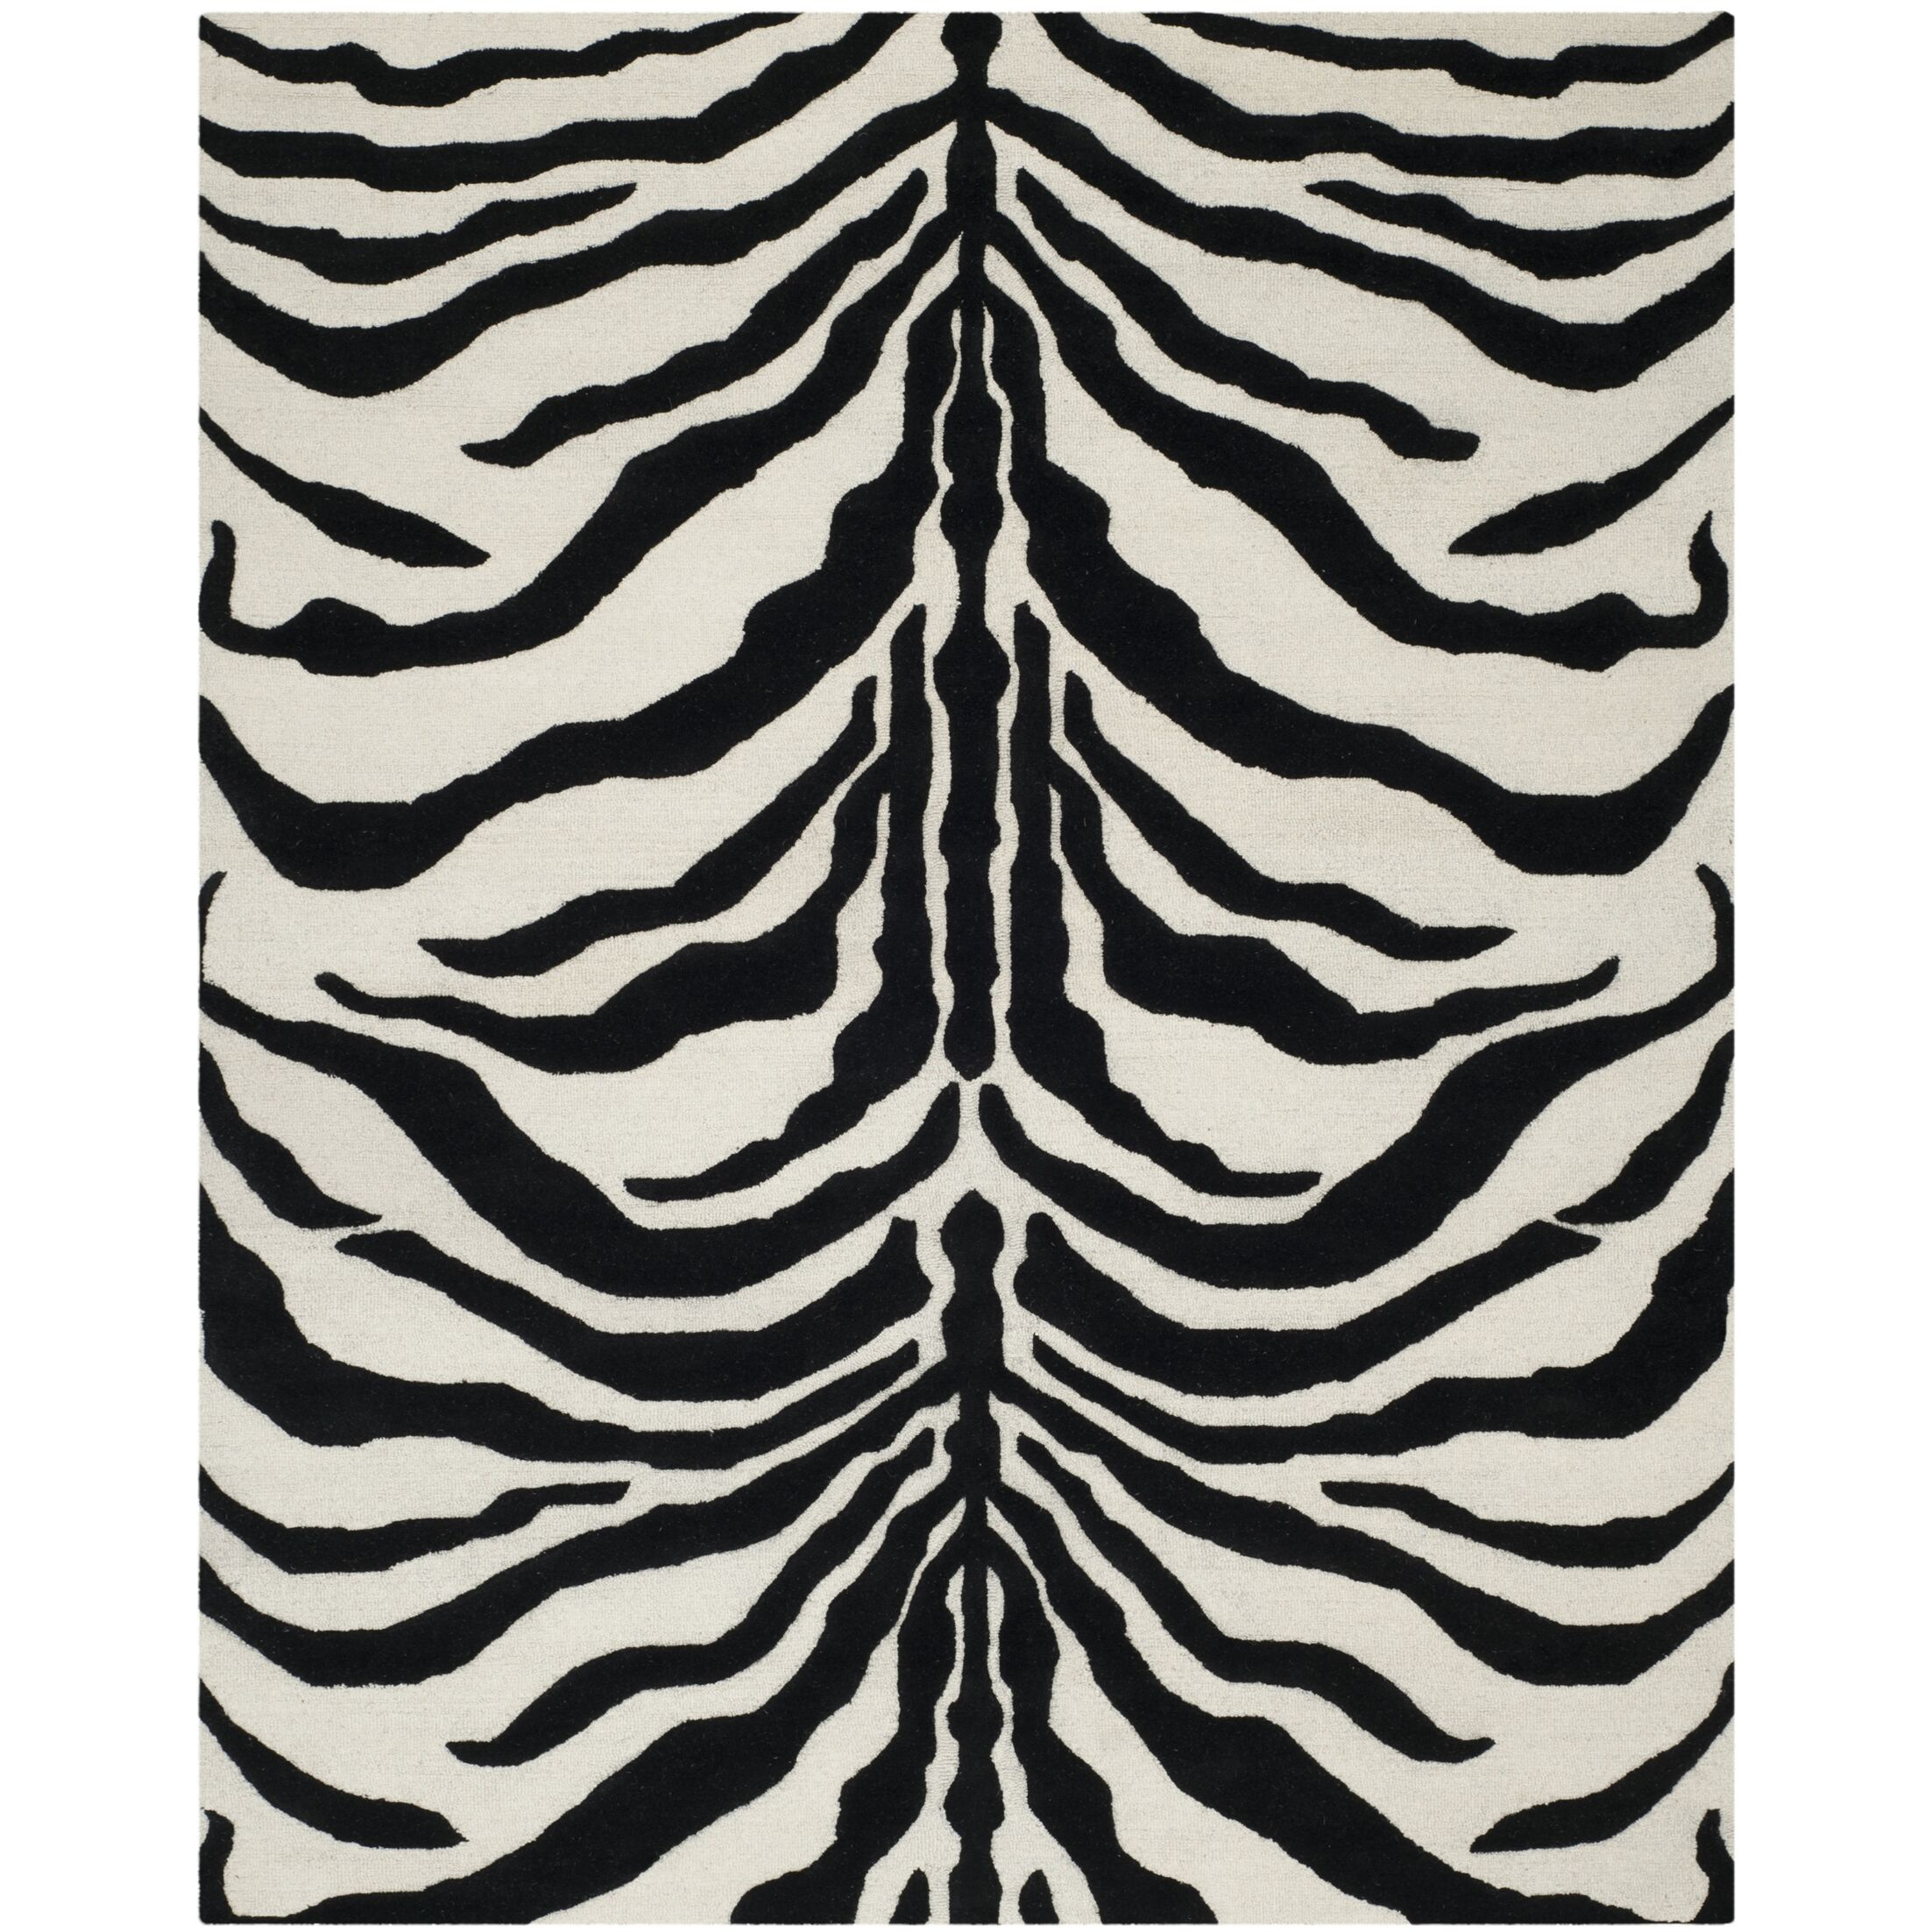 Roloff Hand-Tufted Wool Ivory/Black Area Rug Rug Size: Rectangle 6' x 9'